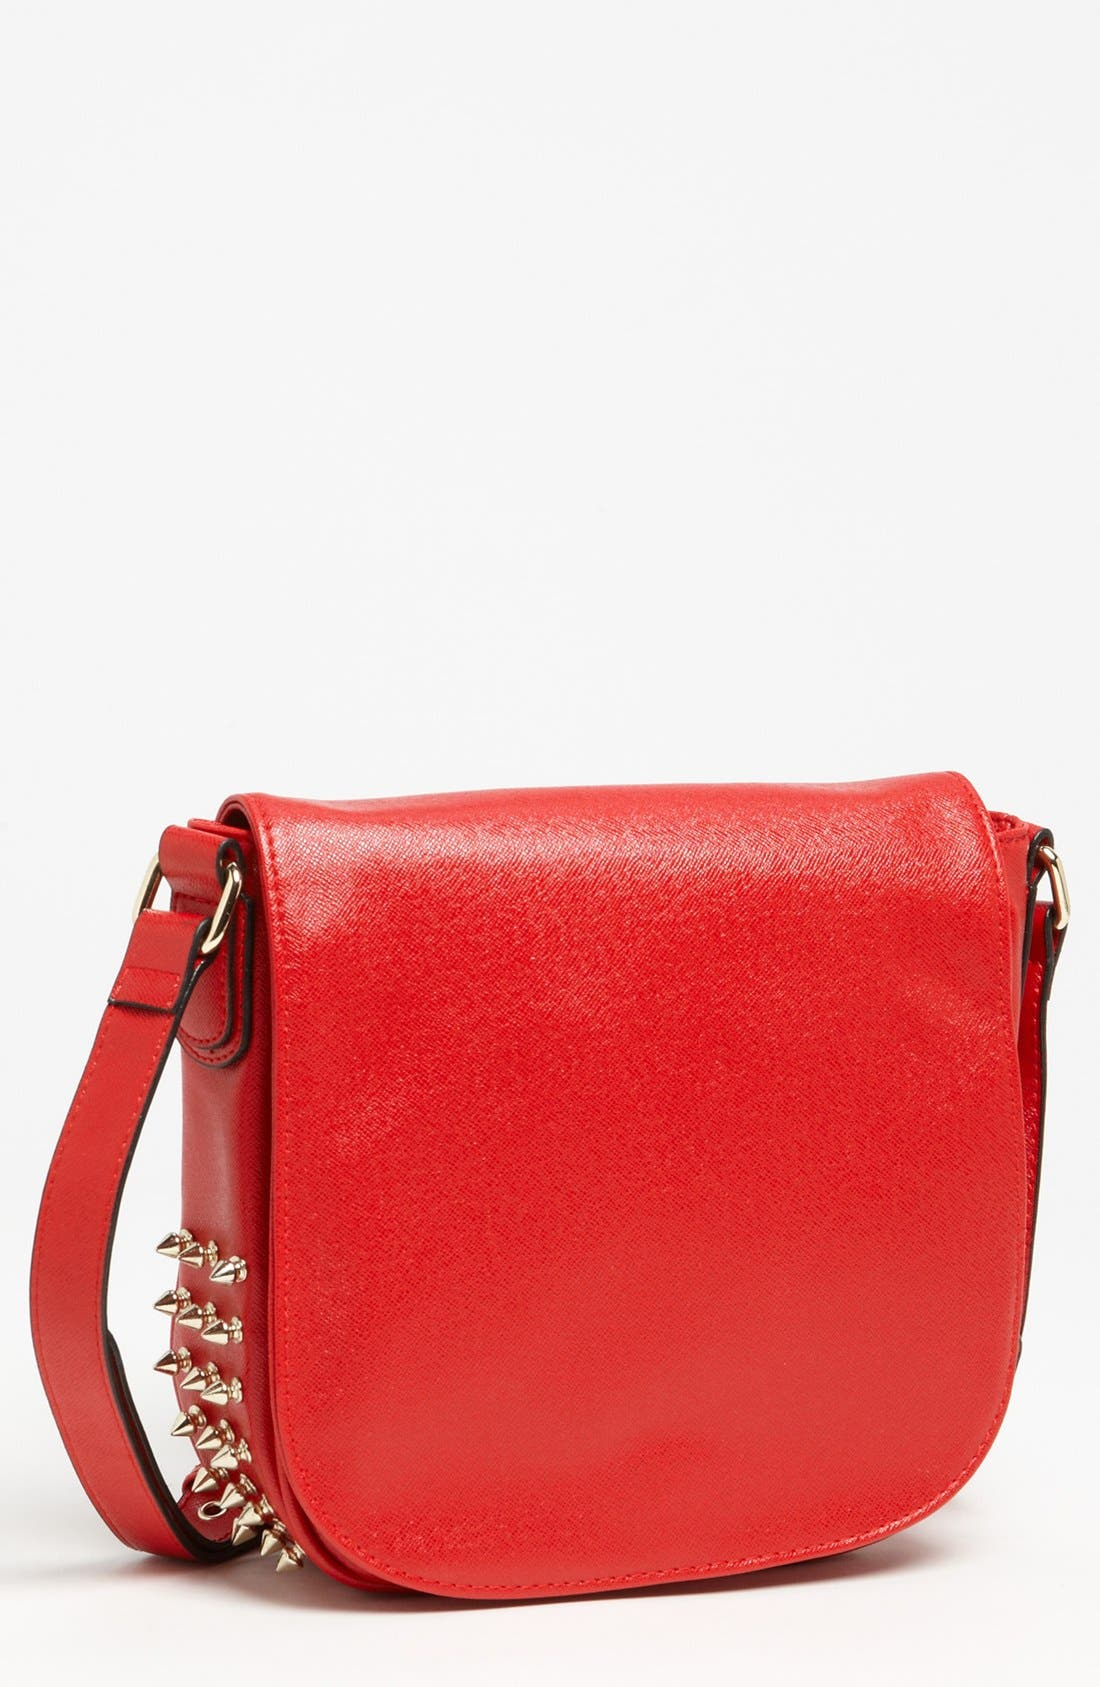 Main Image - Emperia Studded Faux Leather Crossbody Bag, Small